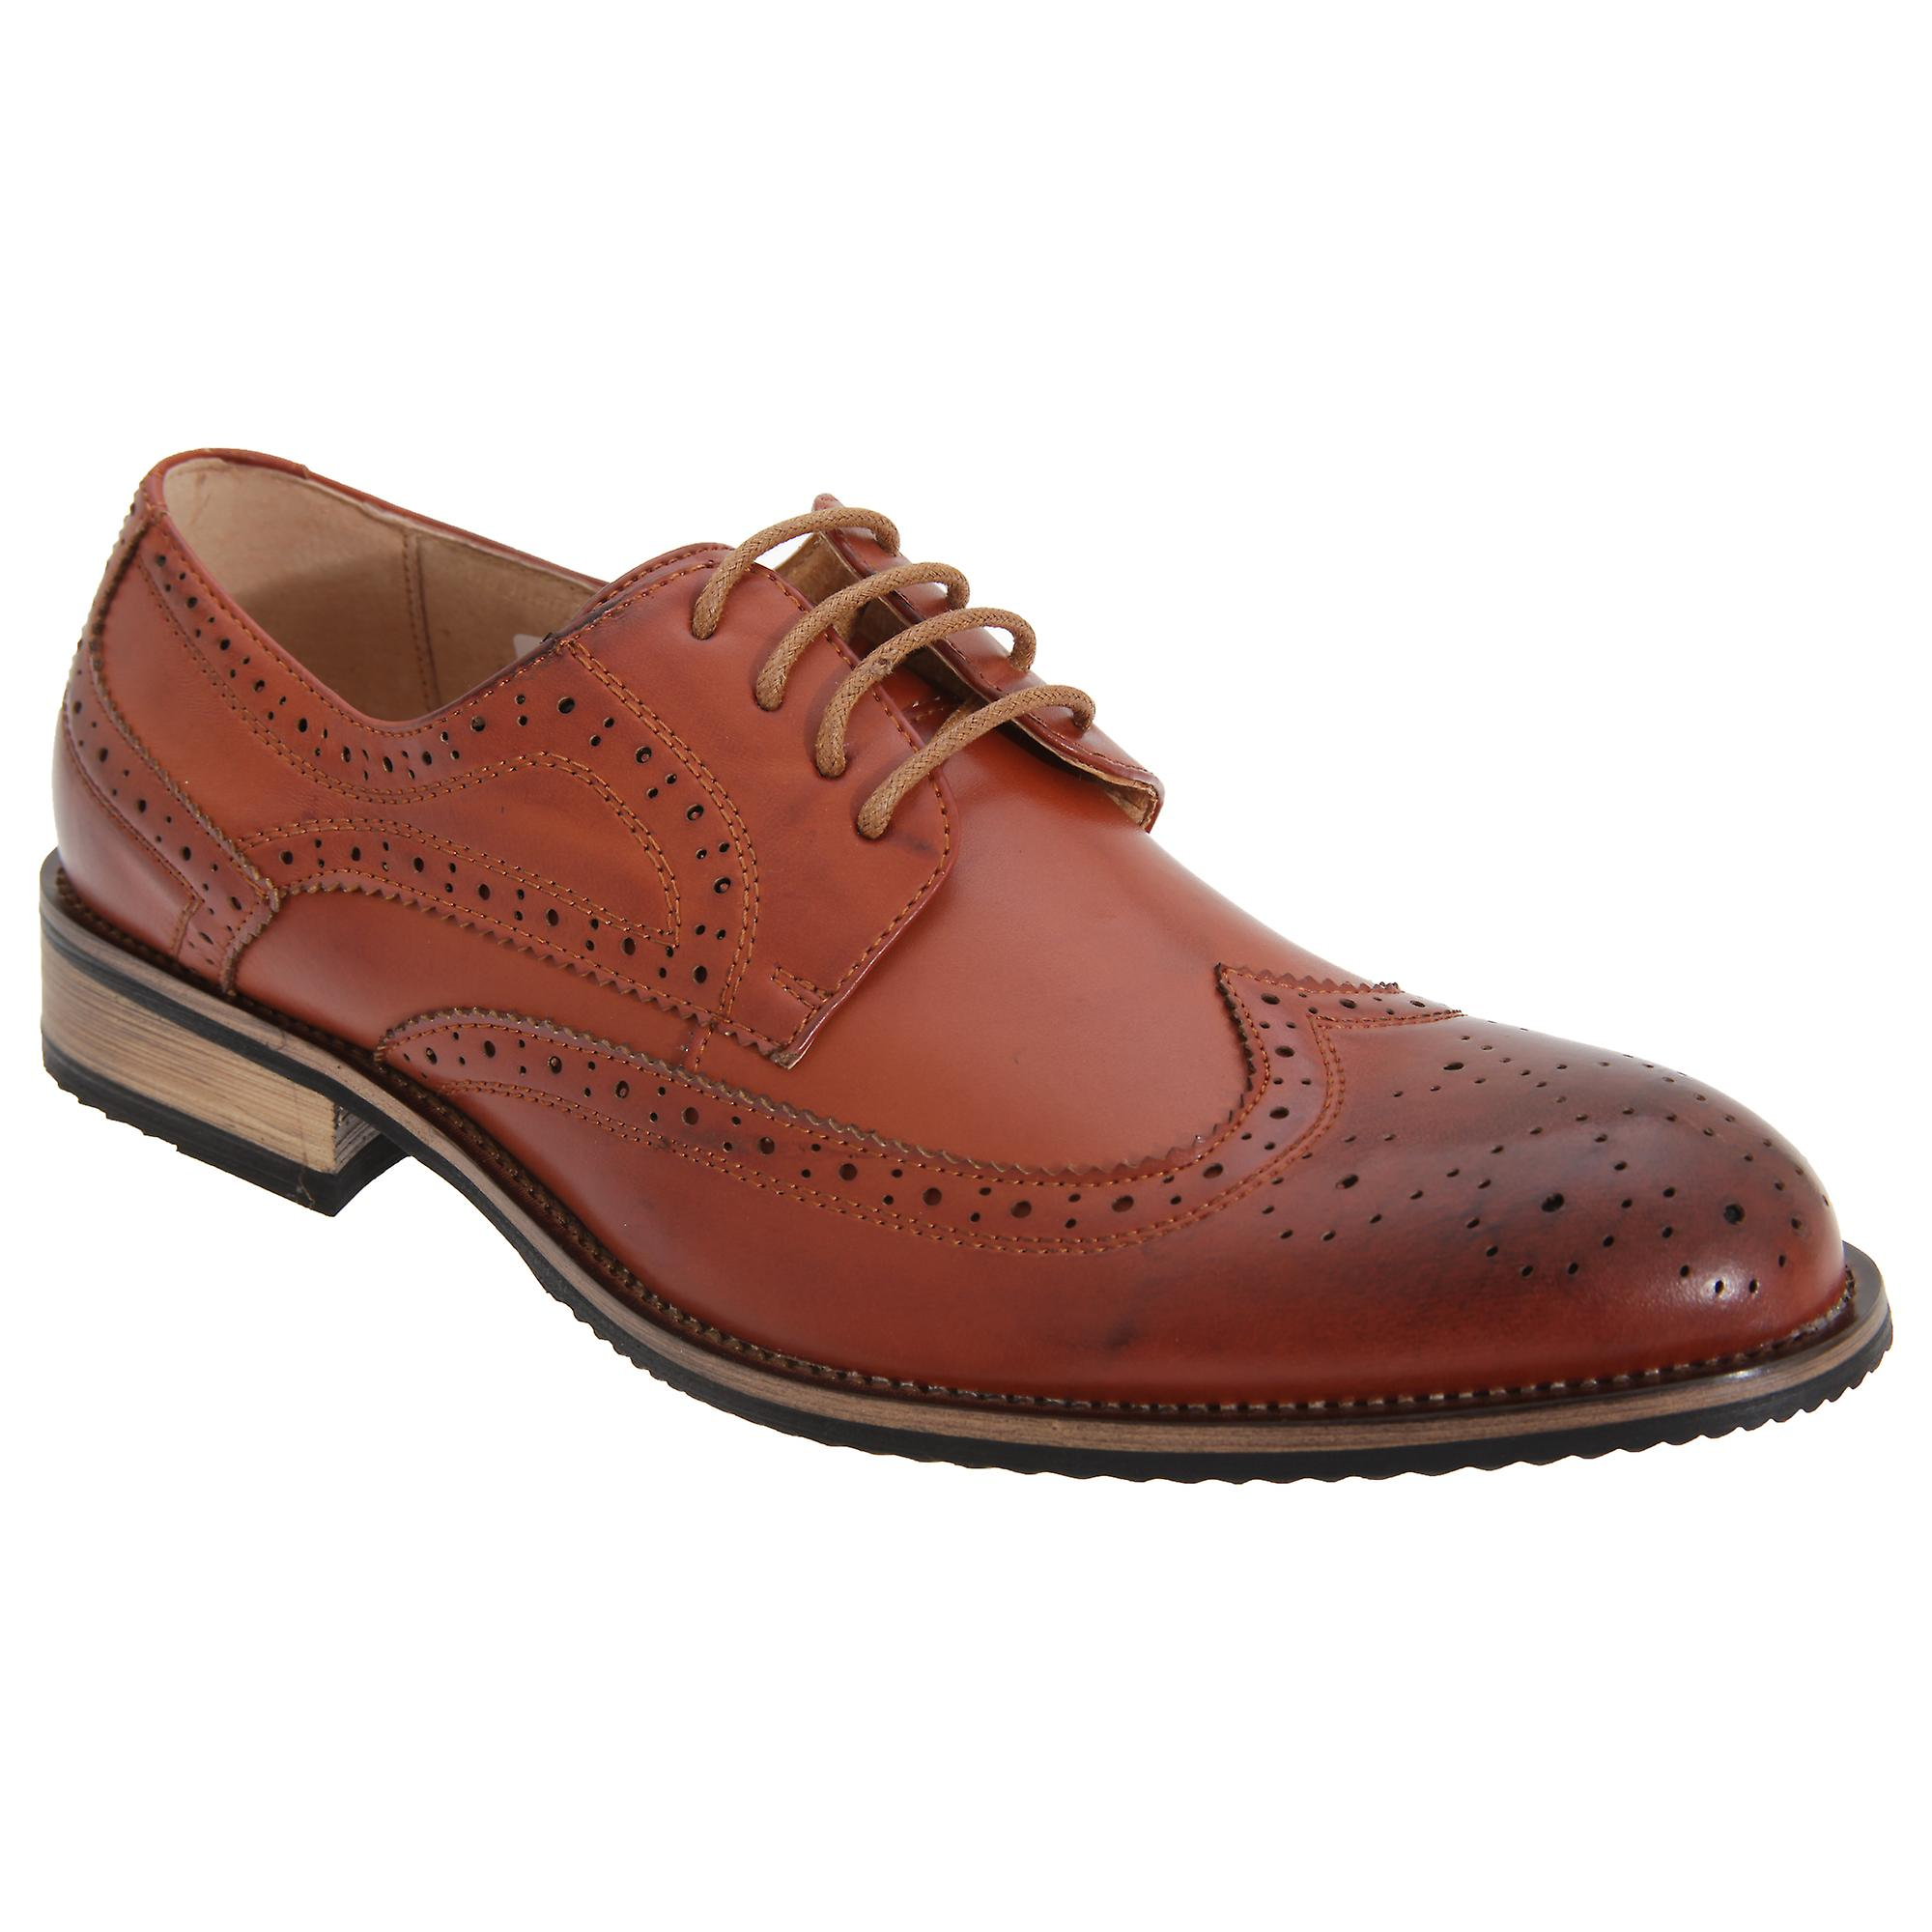 Route 21 Mens 4 Eyelet Brogue Tie Shoes